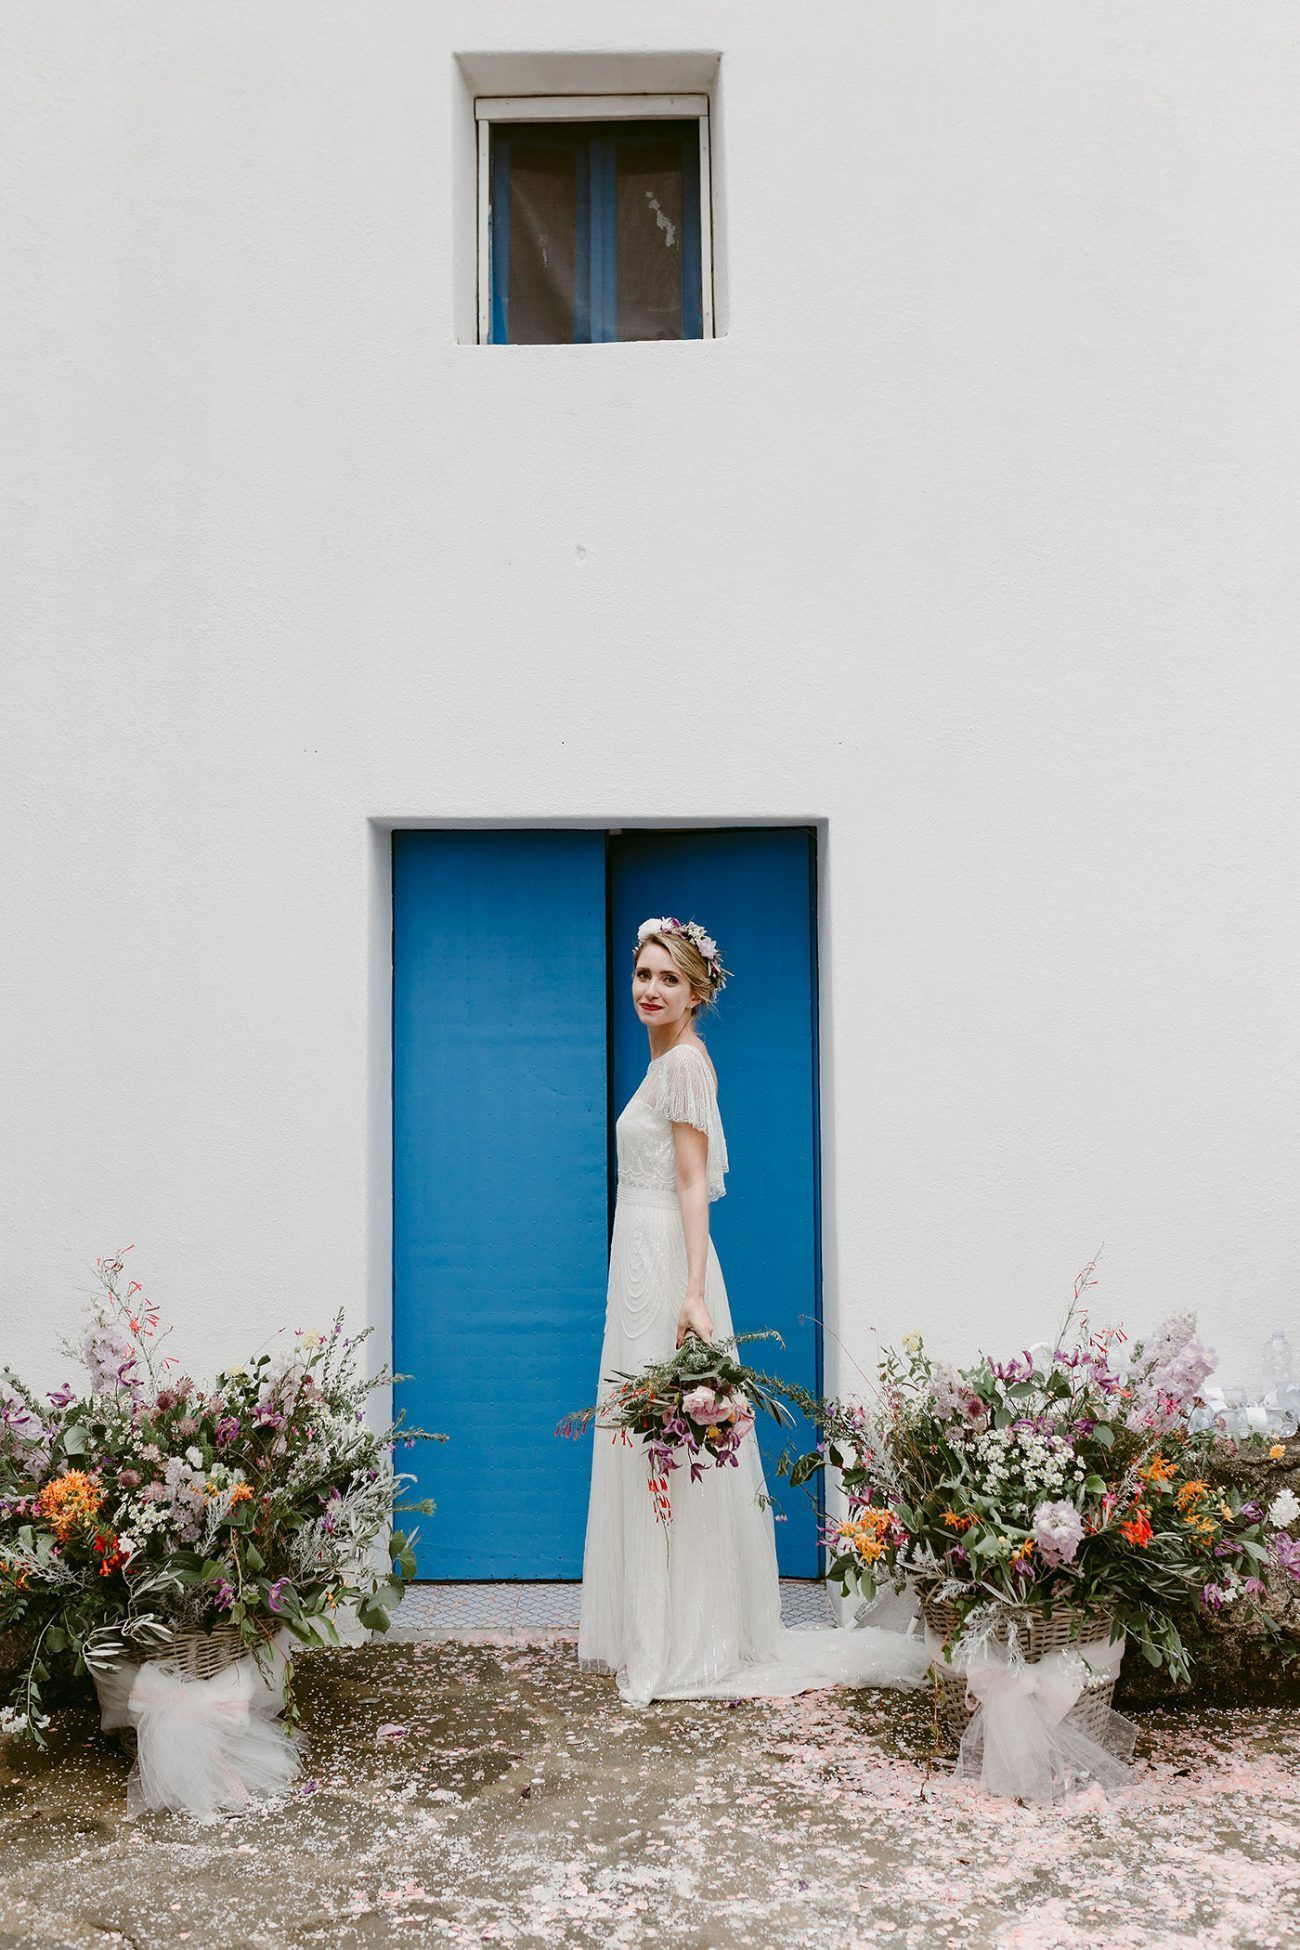 Eleanora and Marco's Intimate Sicilian Island Wedding Featured Blues and Greens that Complemented the Lush Island Lanscape